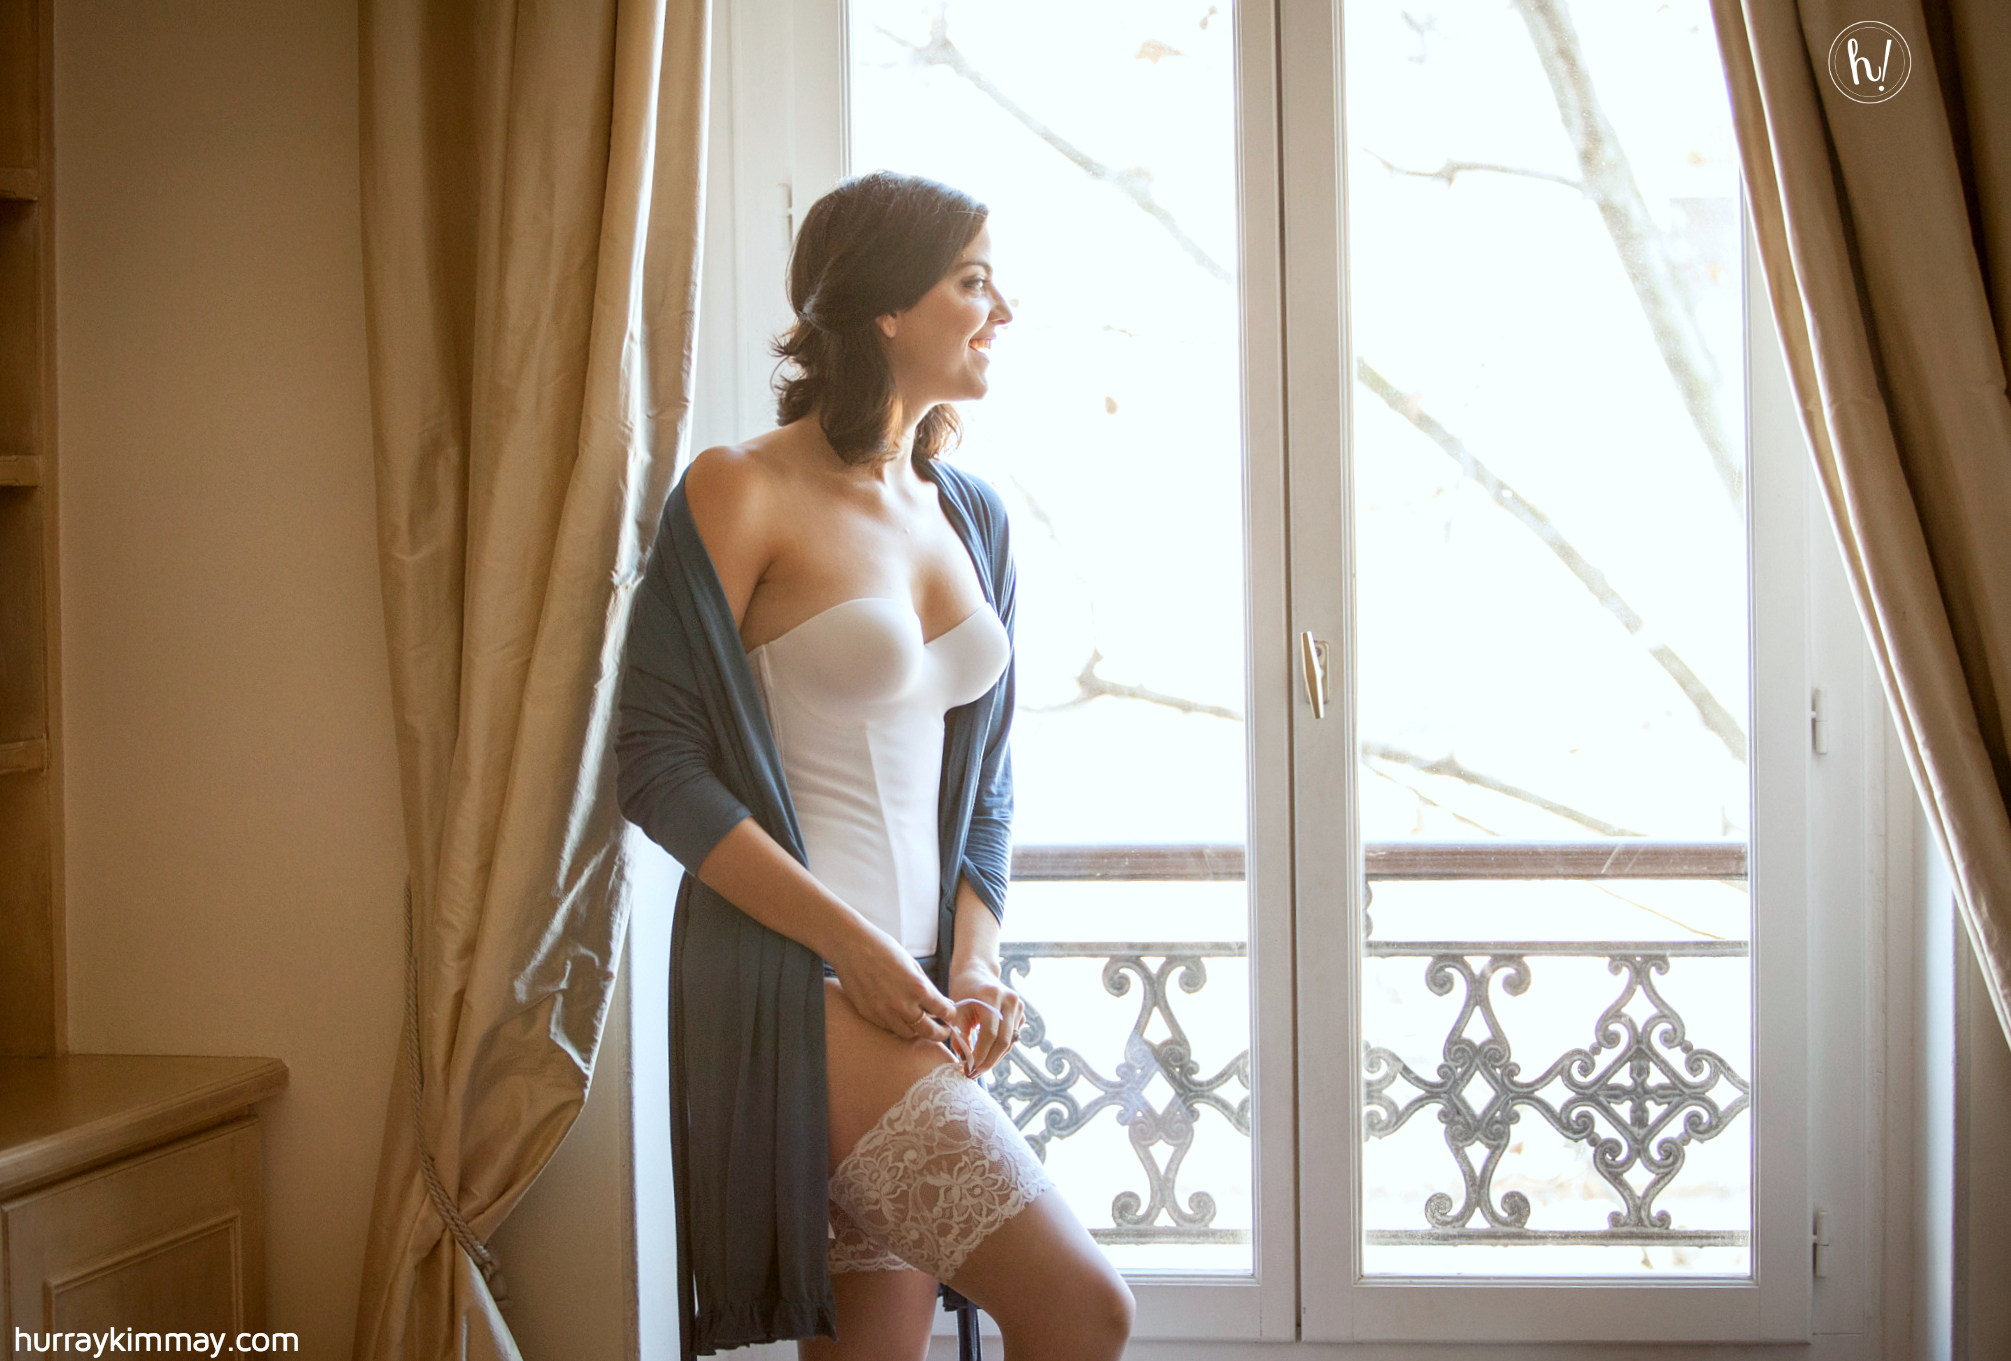 Kimmay wearing longline bra with thigh highs in Paris on Hurray Kimmay Blog